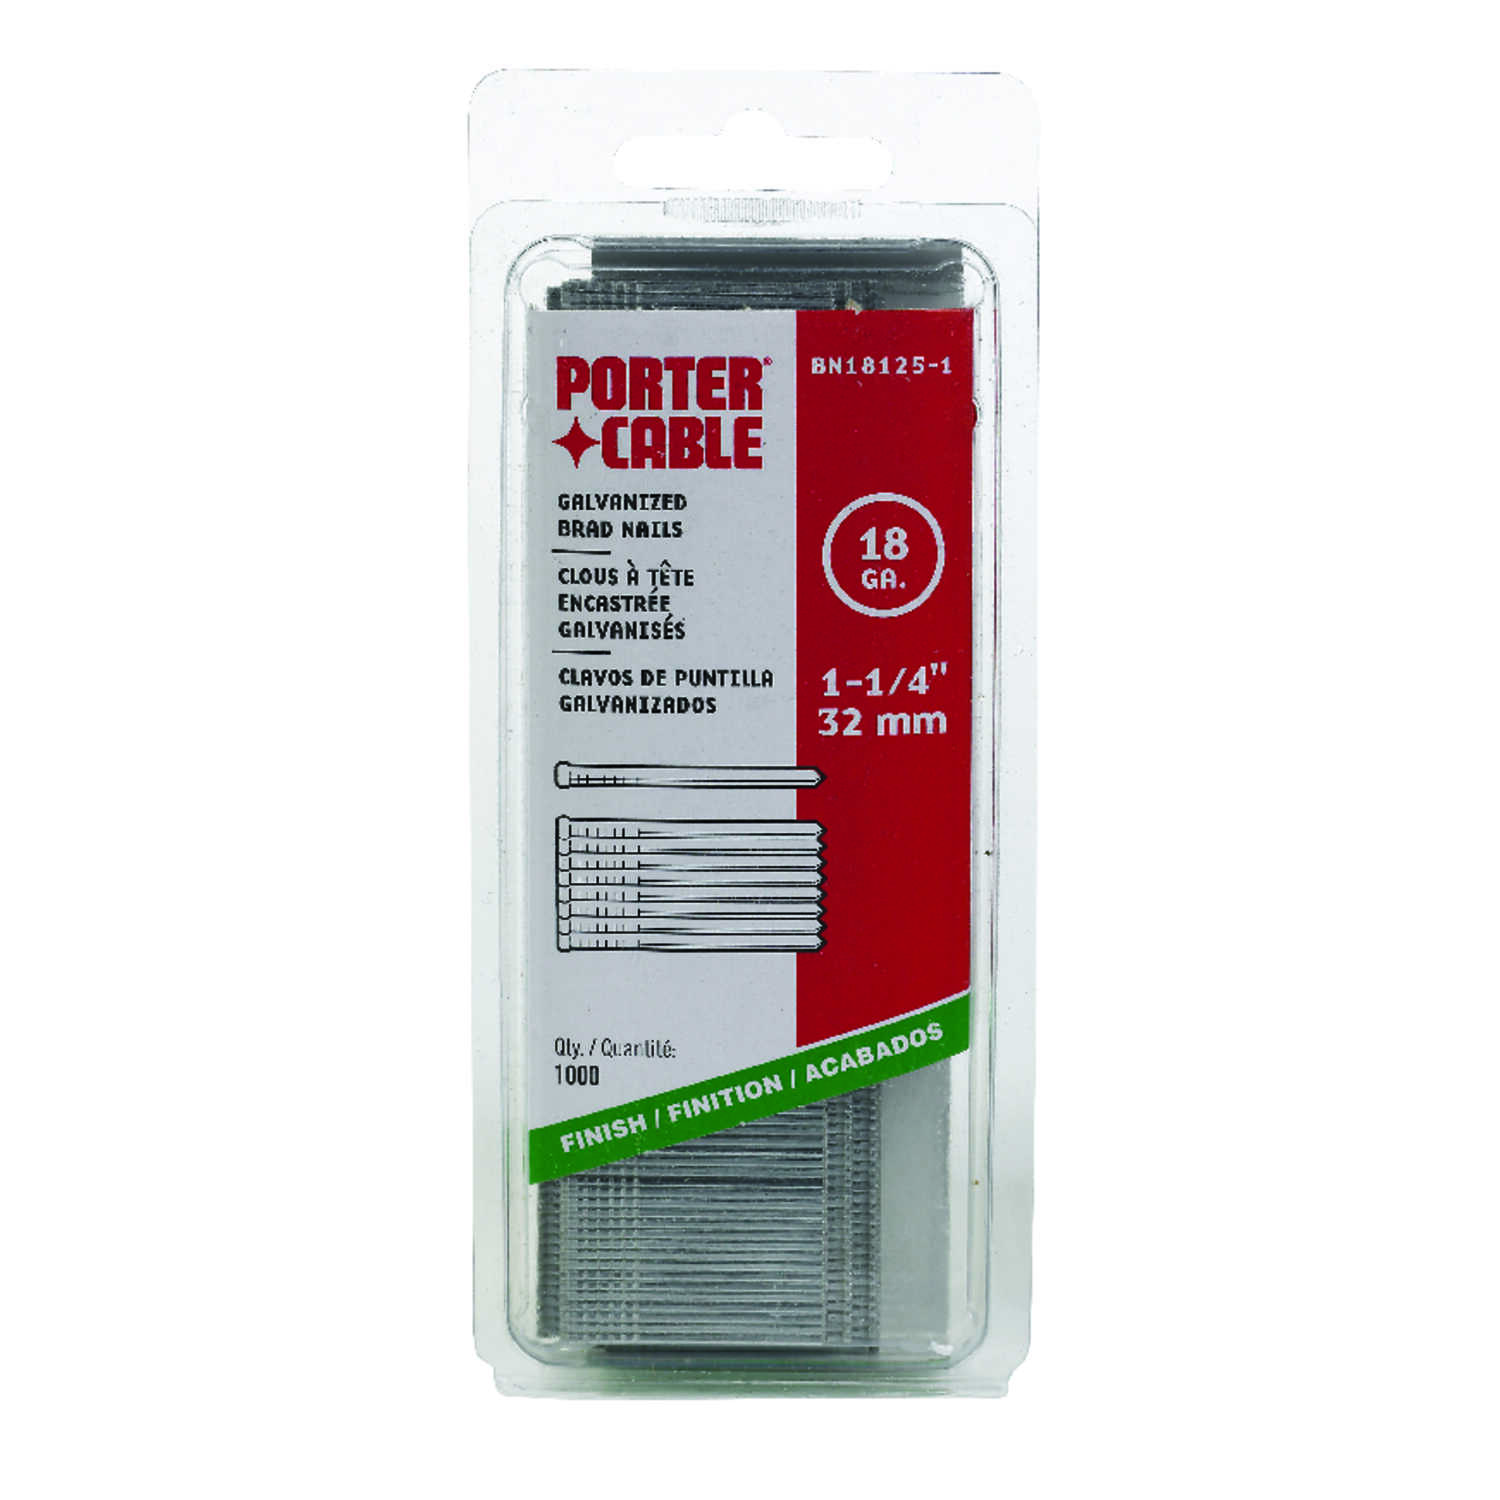 Porter Cable  18 Ga. Smooth Shank  Straight Strip  Brad Nails  1-1/4 in. L 1,000 pk